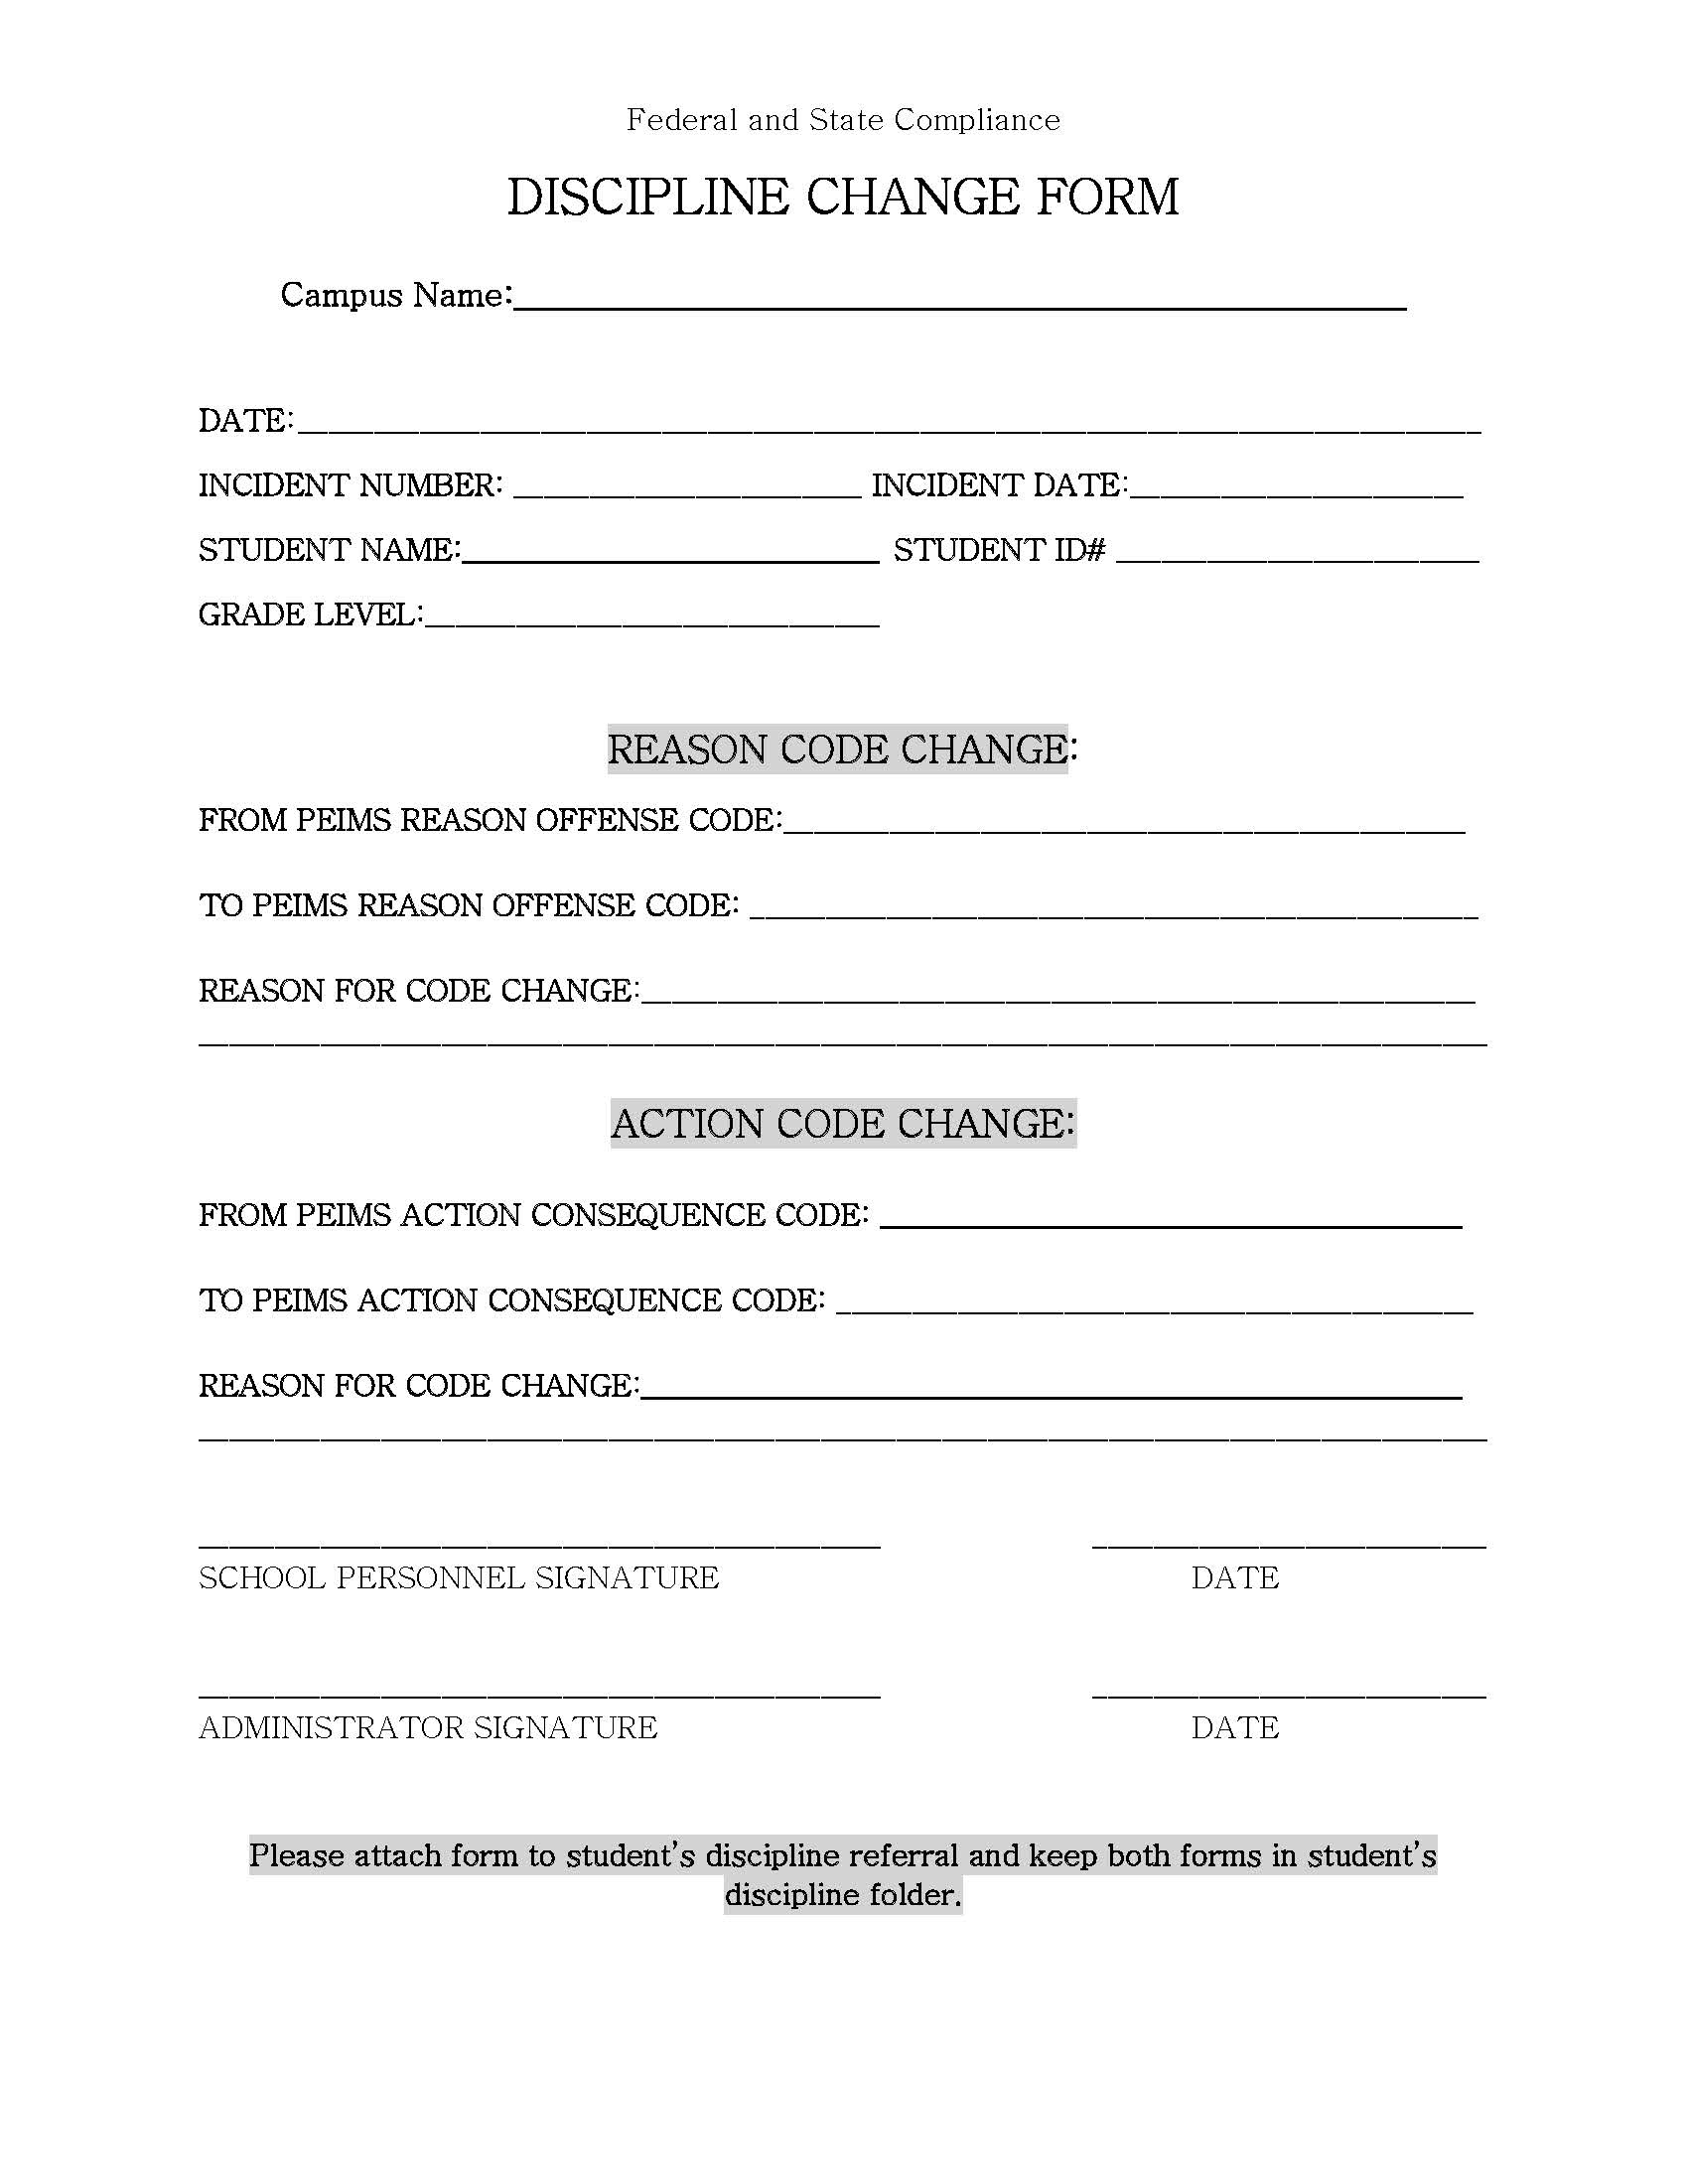 Discipline Change Form